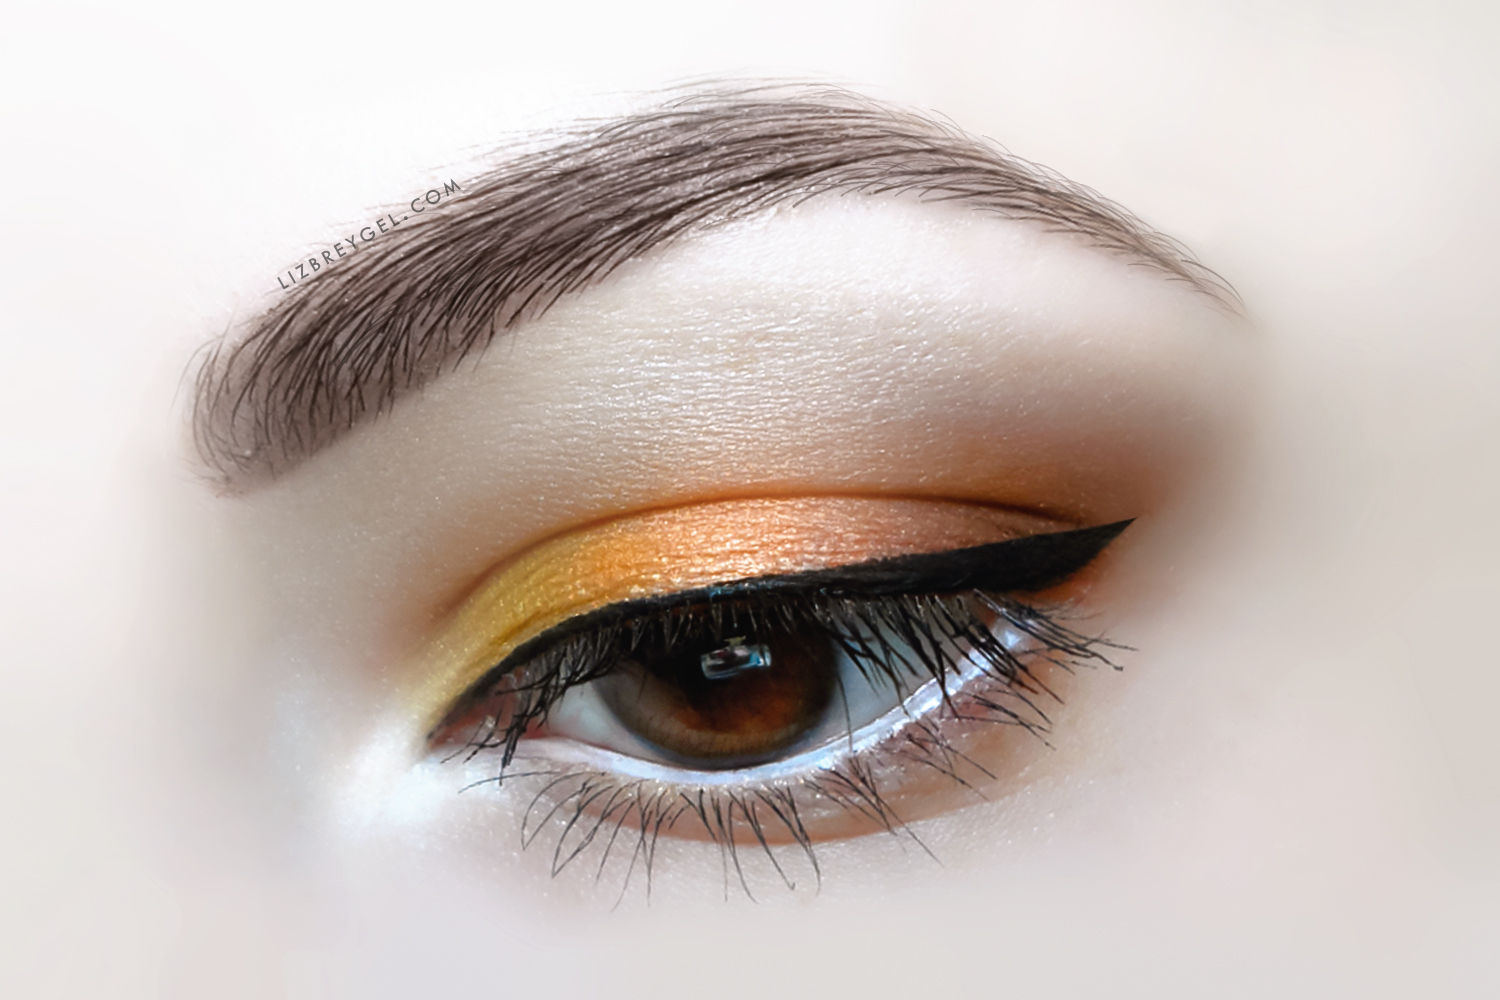 a close up picture of an eye with warm, autumn-inspired makeup look